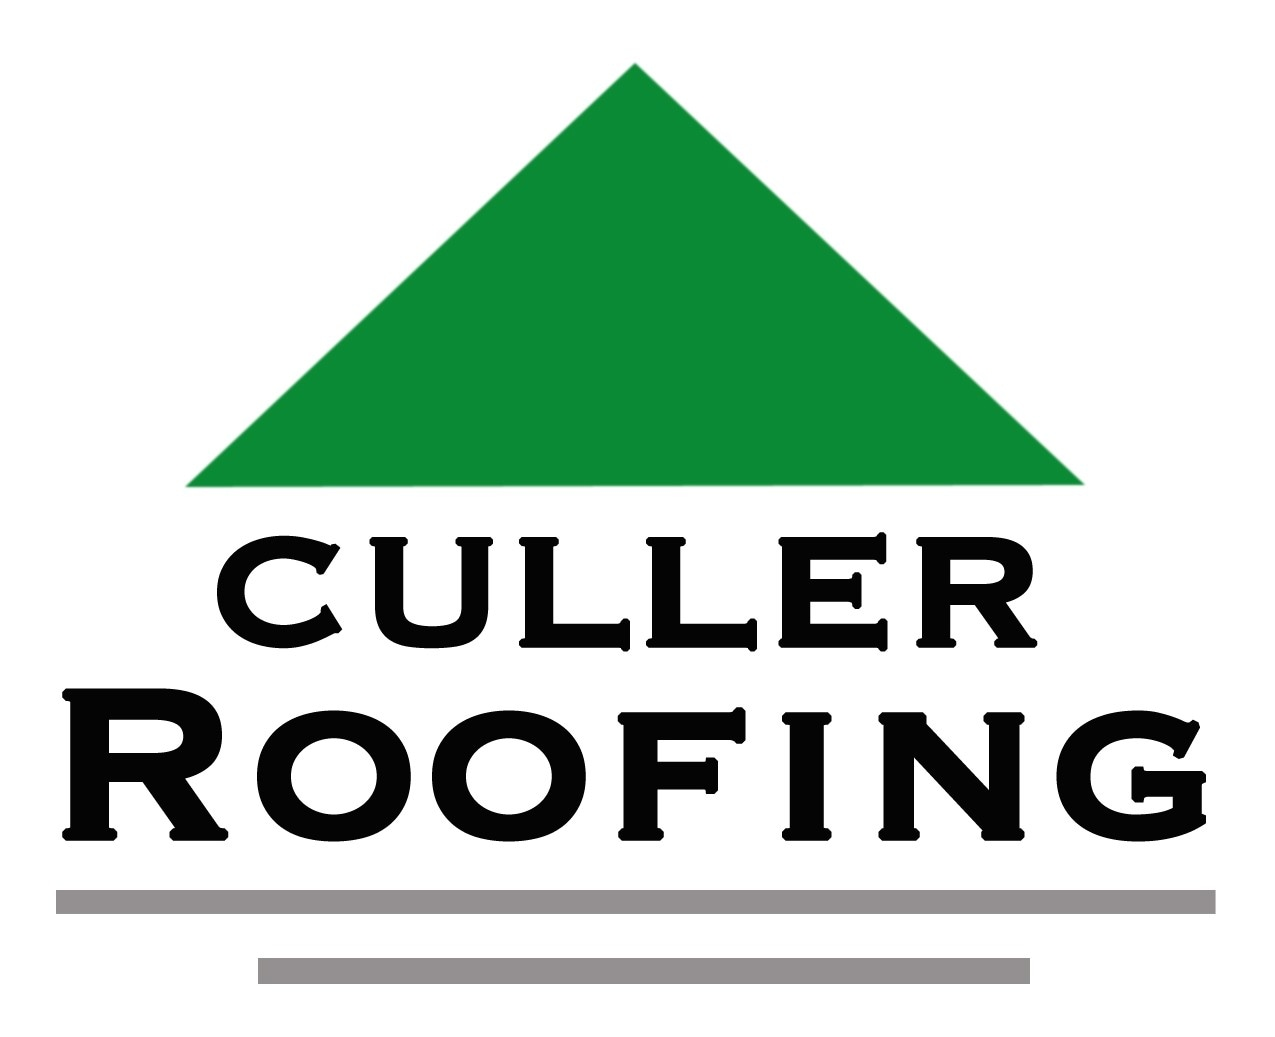 Culler Roofing LLC